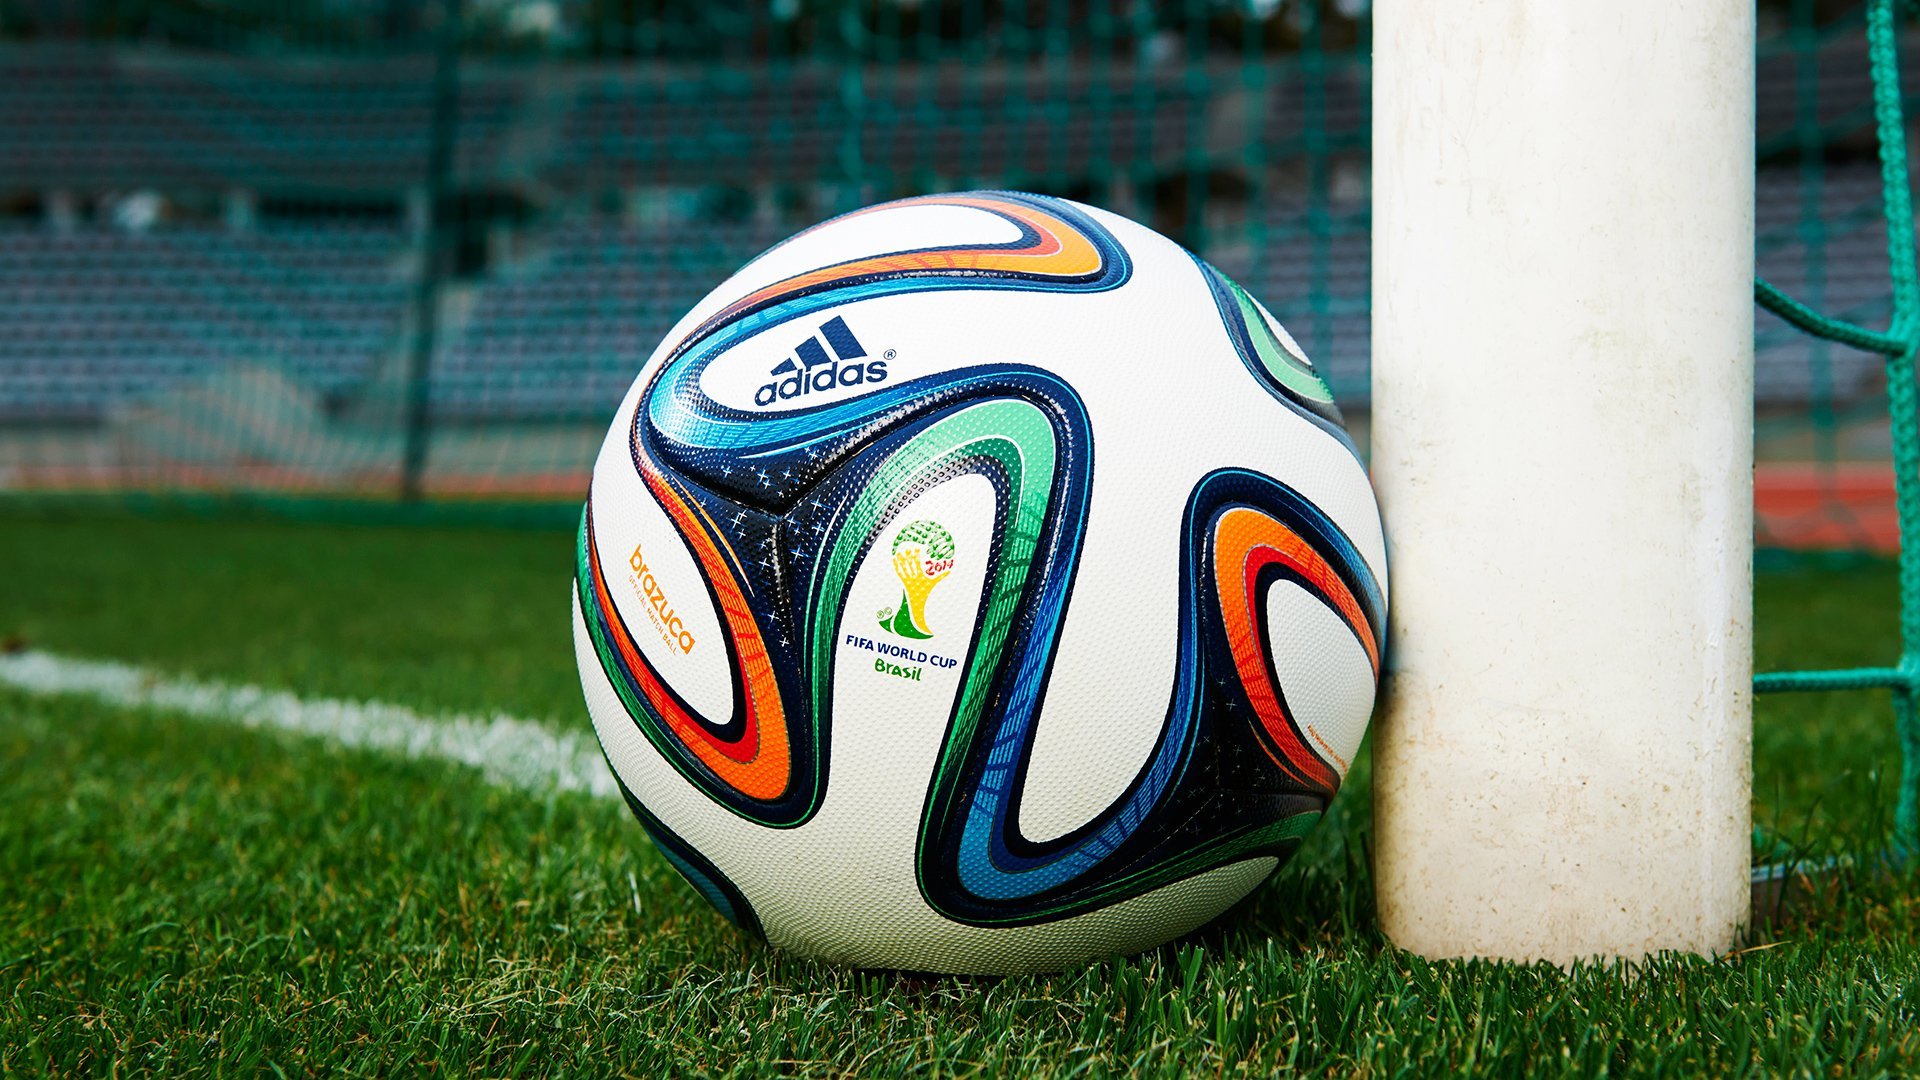 Brazuca-Original-https-www-highdef-com-sports-brazuca-original-Brazuca-Original-is-an-wallpaper-wpc5803042